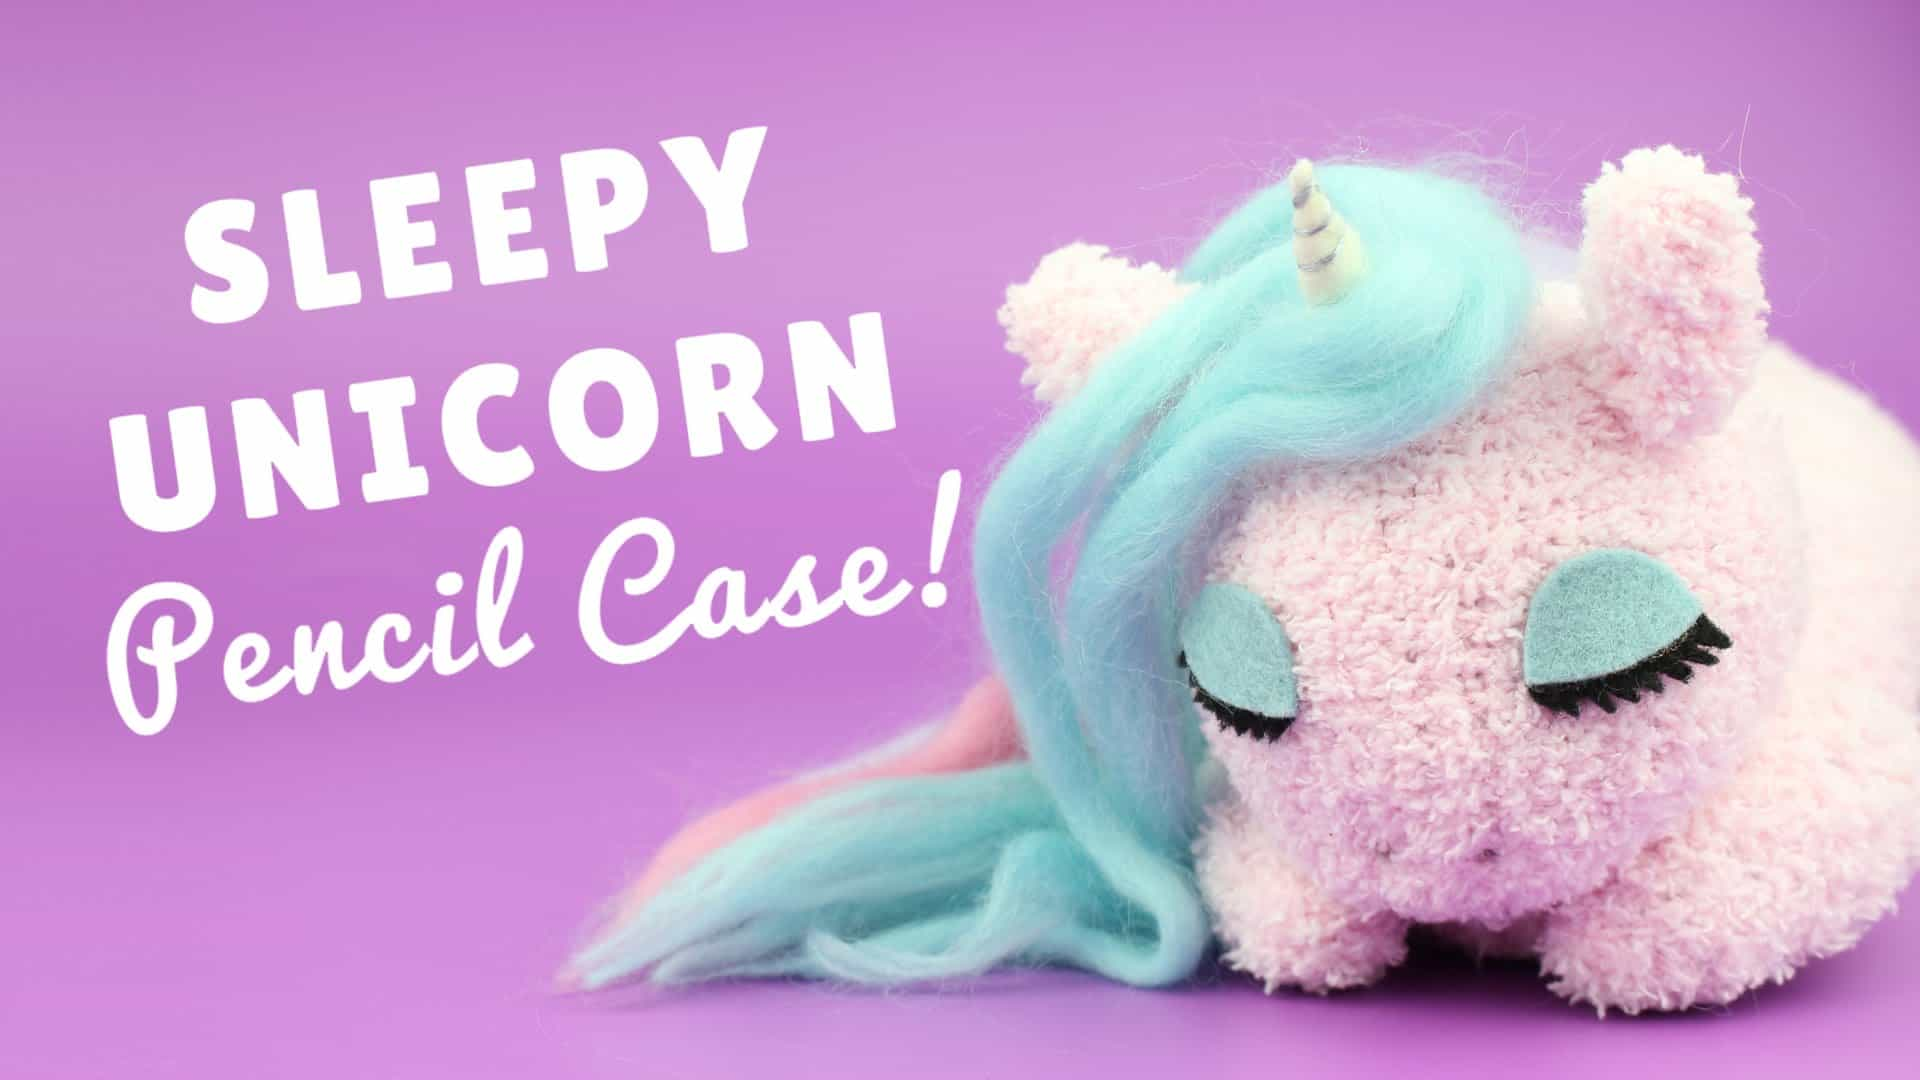 Diy sleepy unicorn pencil case